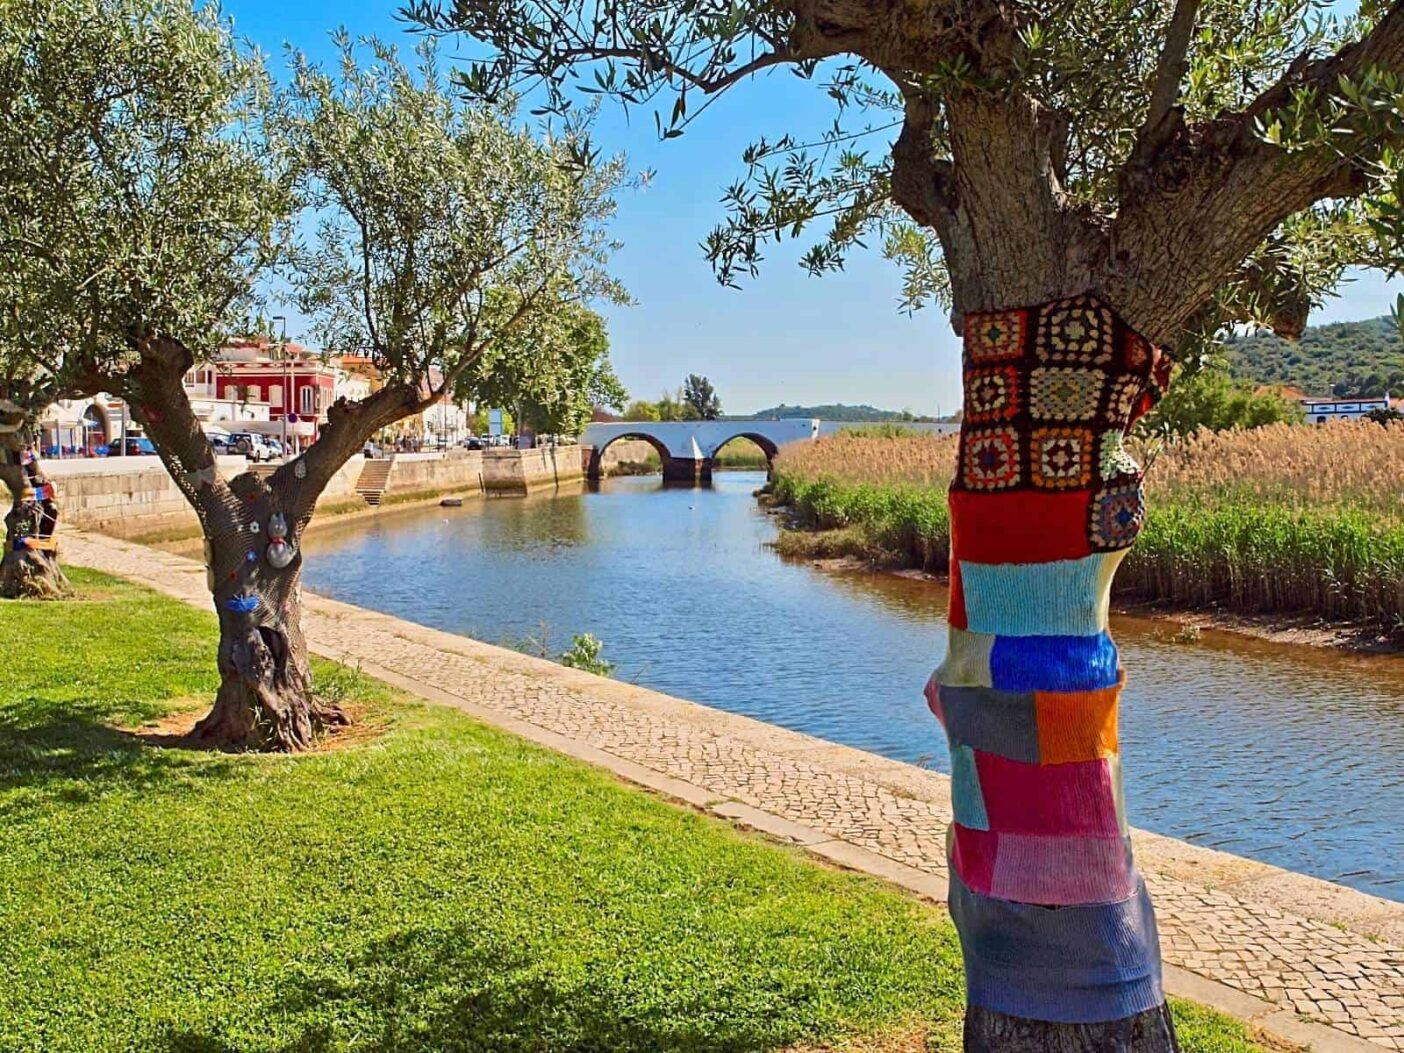 Trees alomg the river in Silves, Portugal, with trunks covered in colourefull croshet